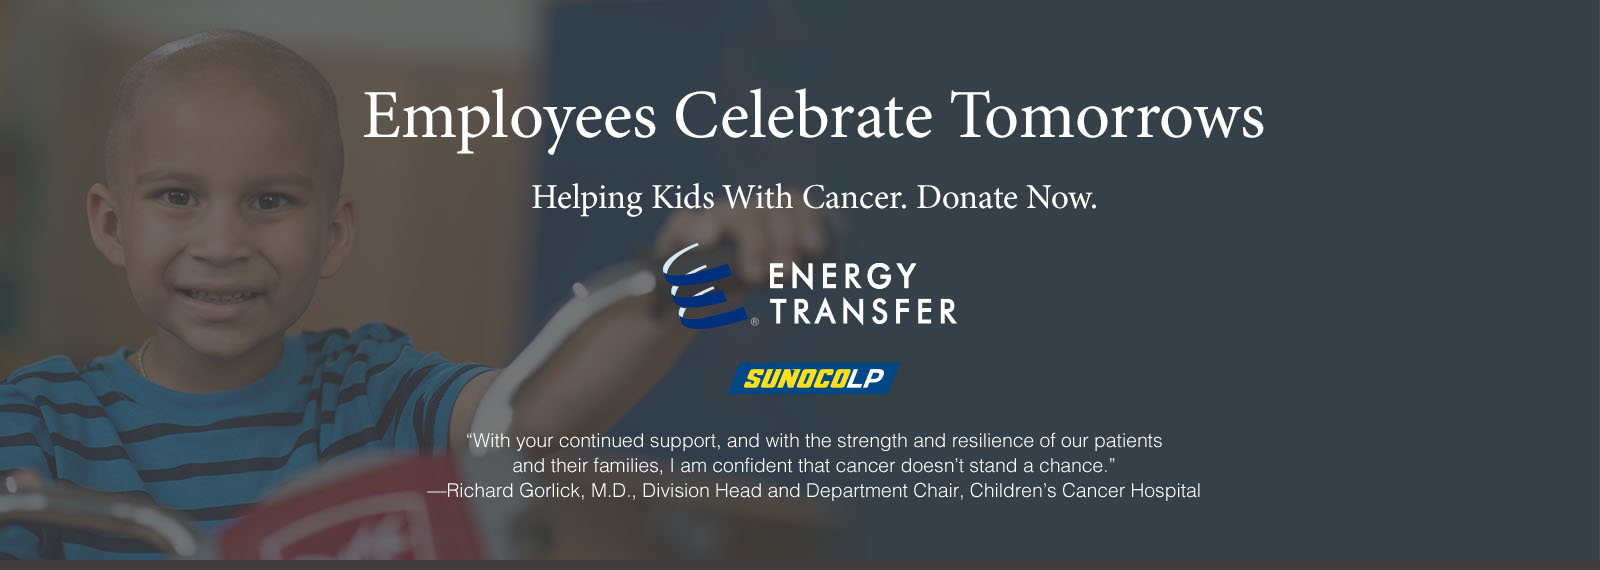 Employees Celebrate Tomorrows - Helping Kids With Cancer. Donate Now. - With your continued support, and with the strength and resilience of our patients and their families, I am confident that cancer doesn't stand a chance.—Richard Gorlick, M.D., Division Head and Department Chair, Children's Cancer Hospital